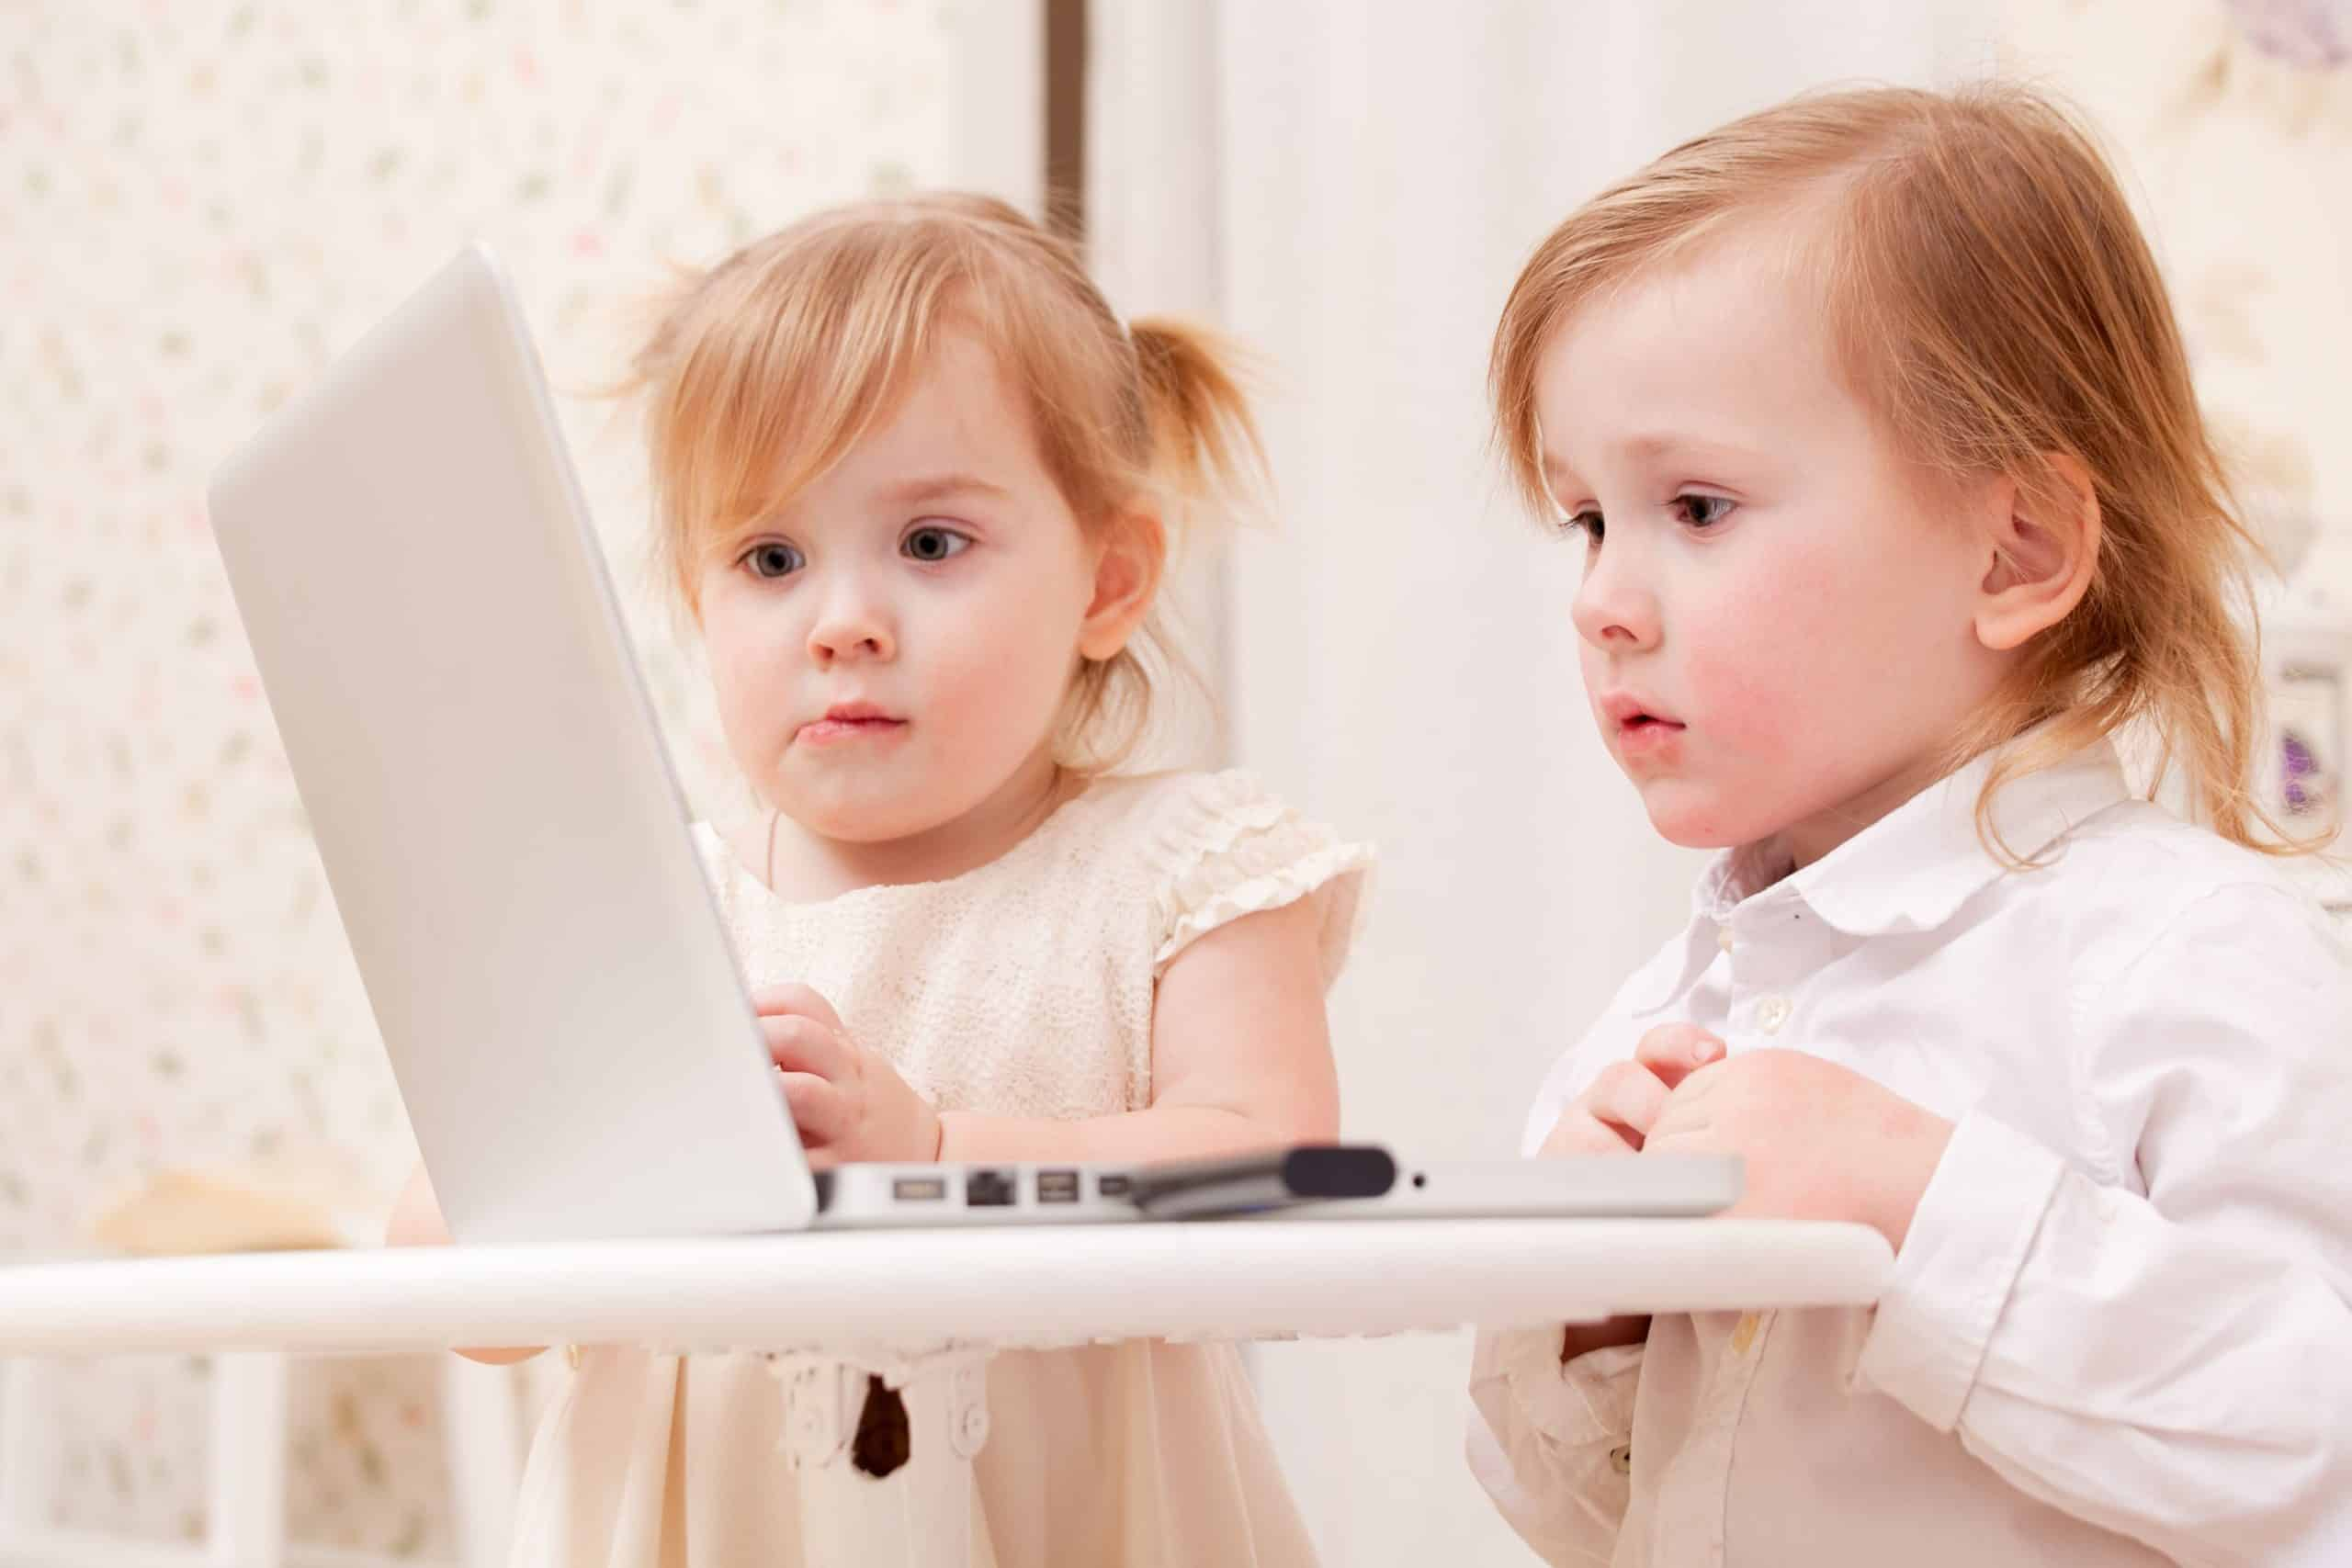 The best online educational games for kids of all ages